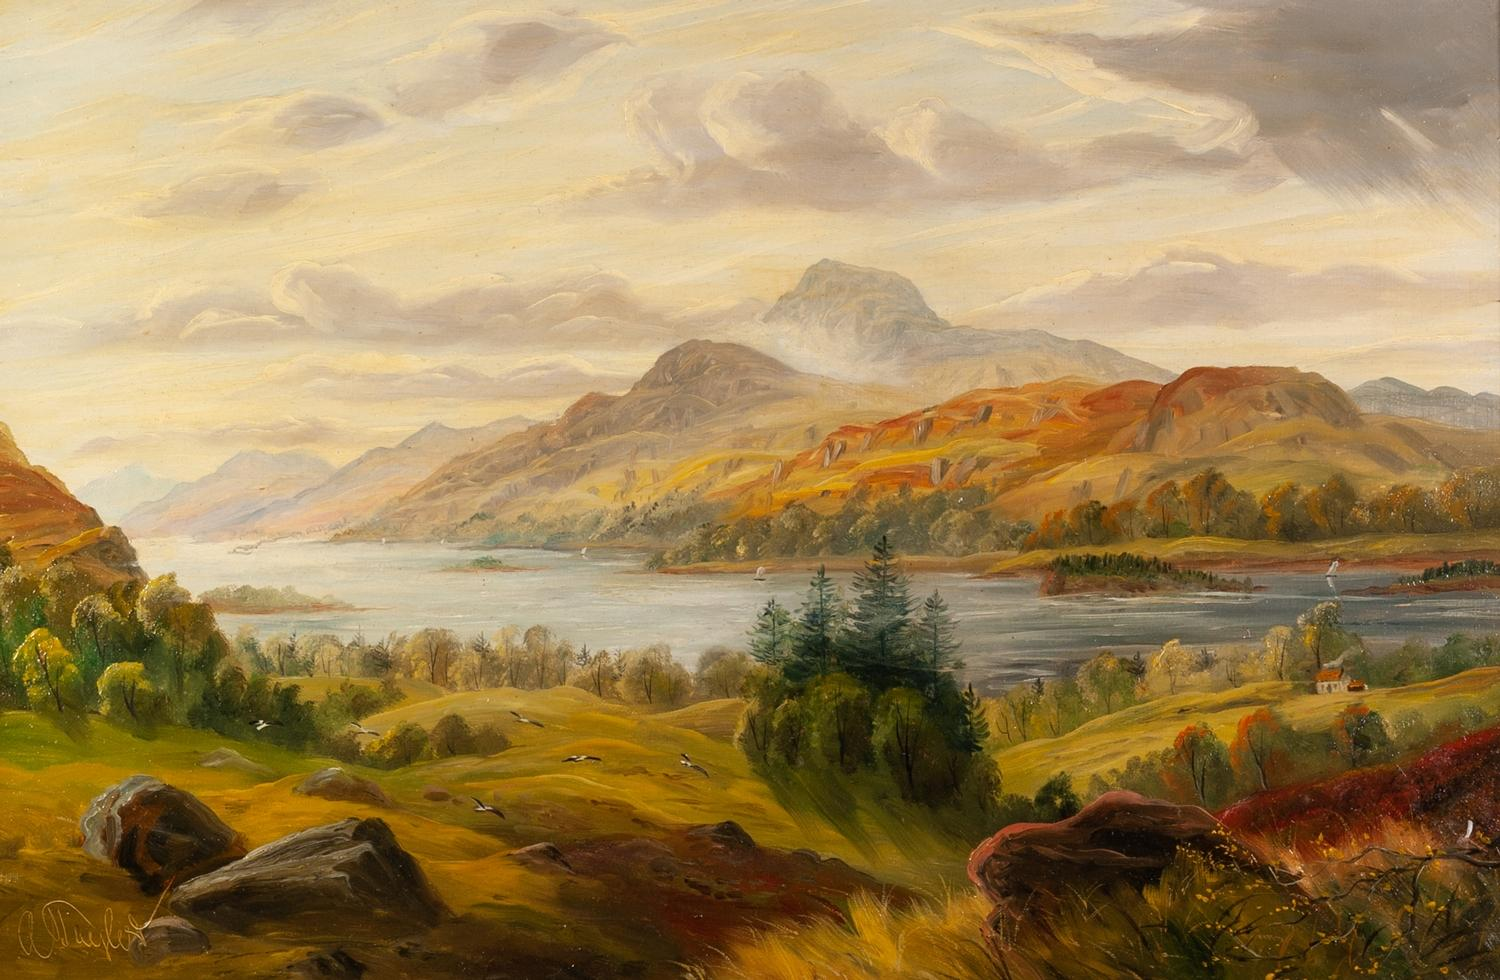 Lot 277 - A. Taylor (late 19th/early 20th century) Oil on canvas View of Loch Lomond with Ben Lomond in the